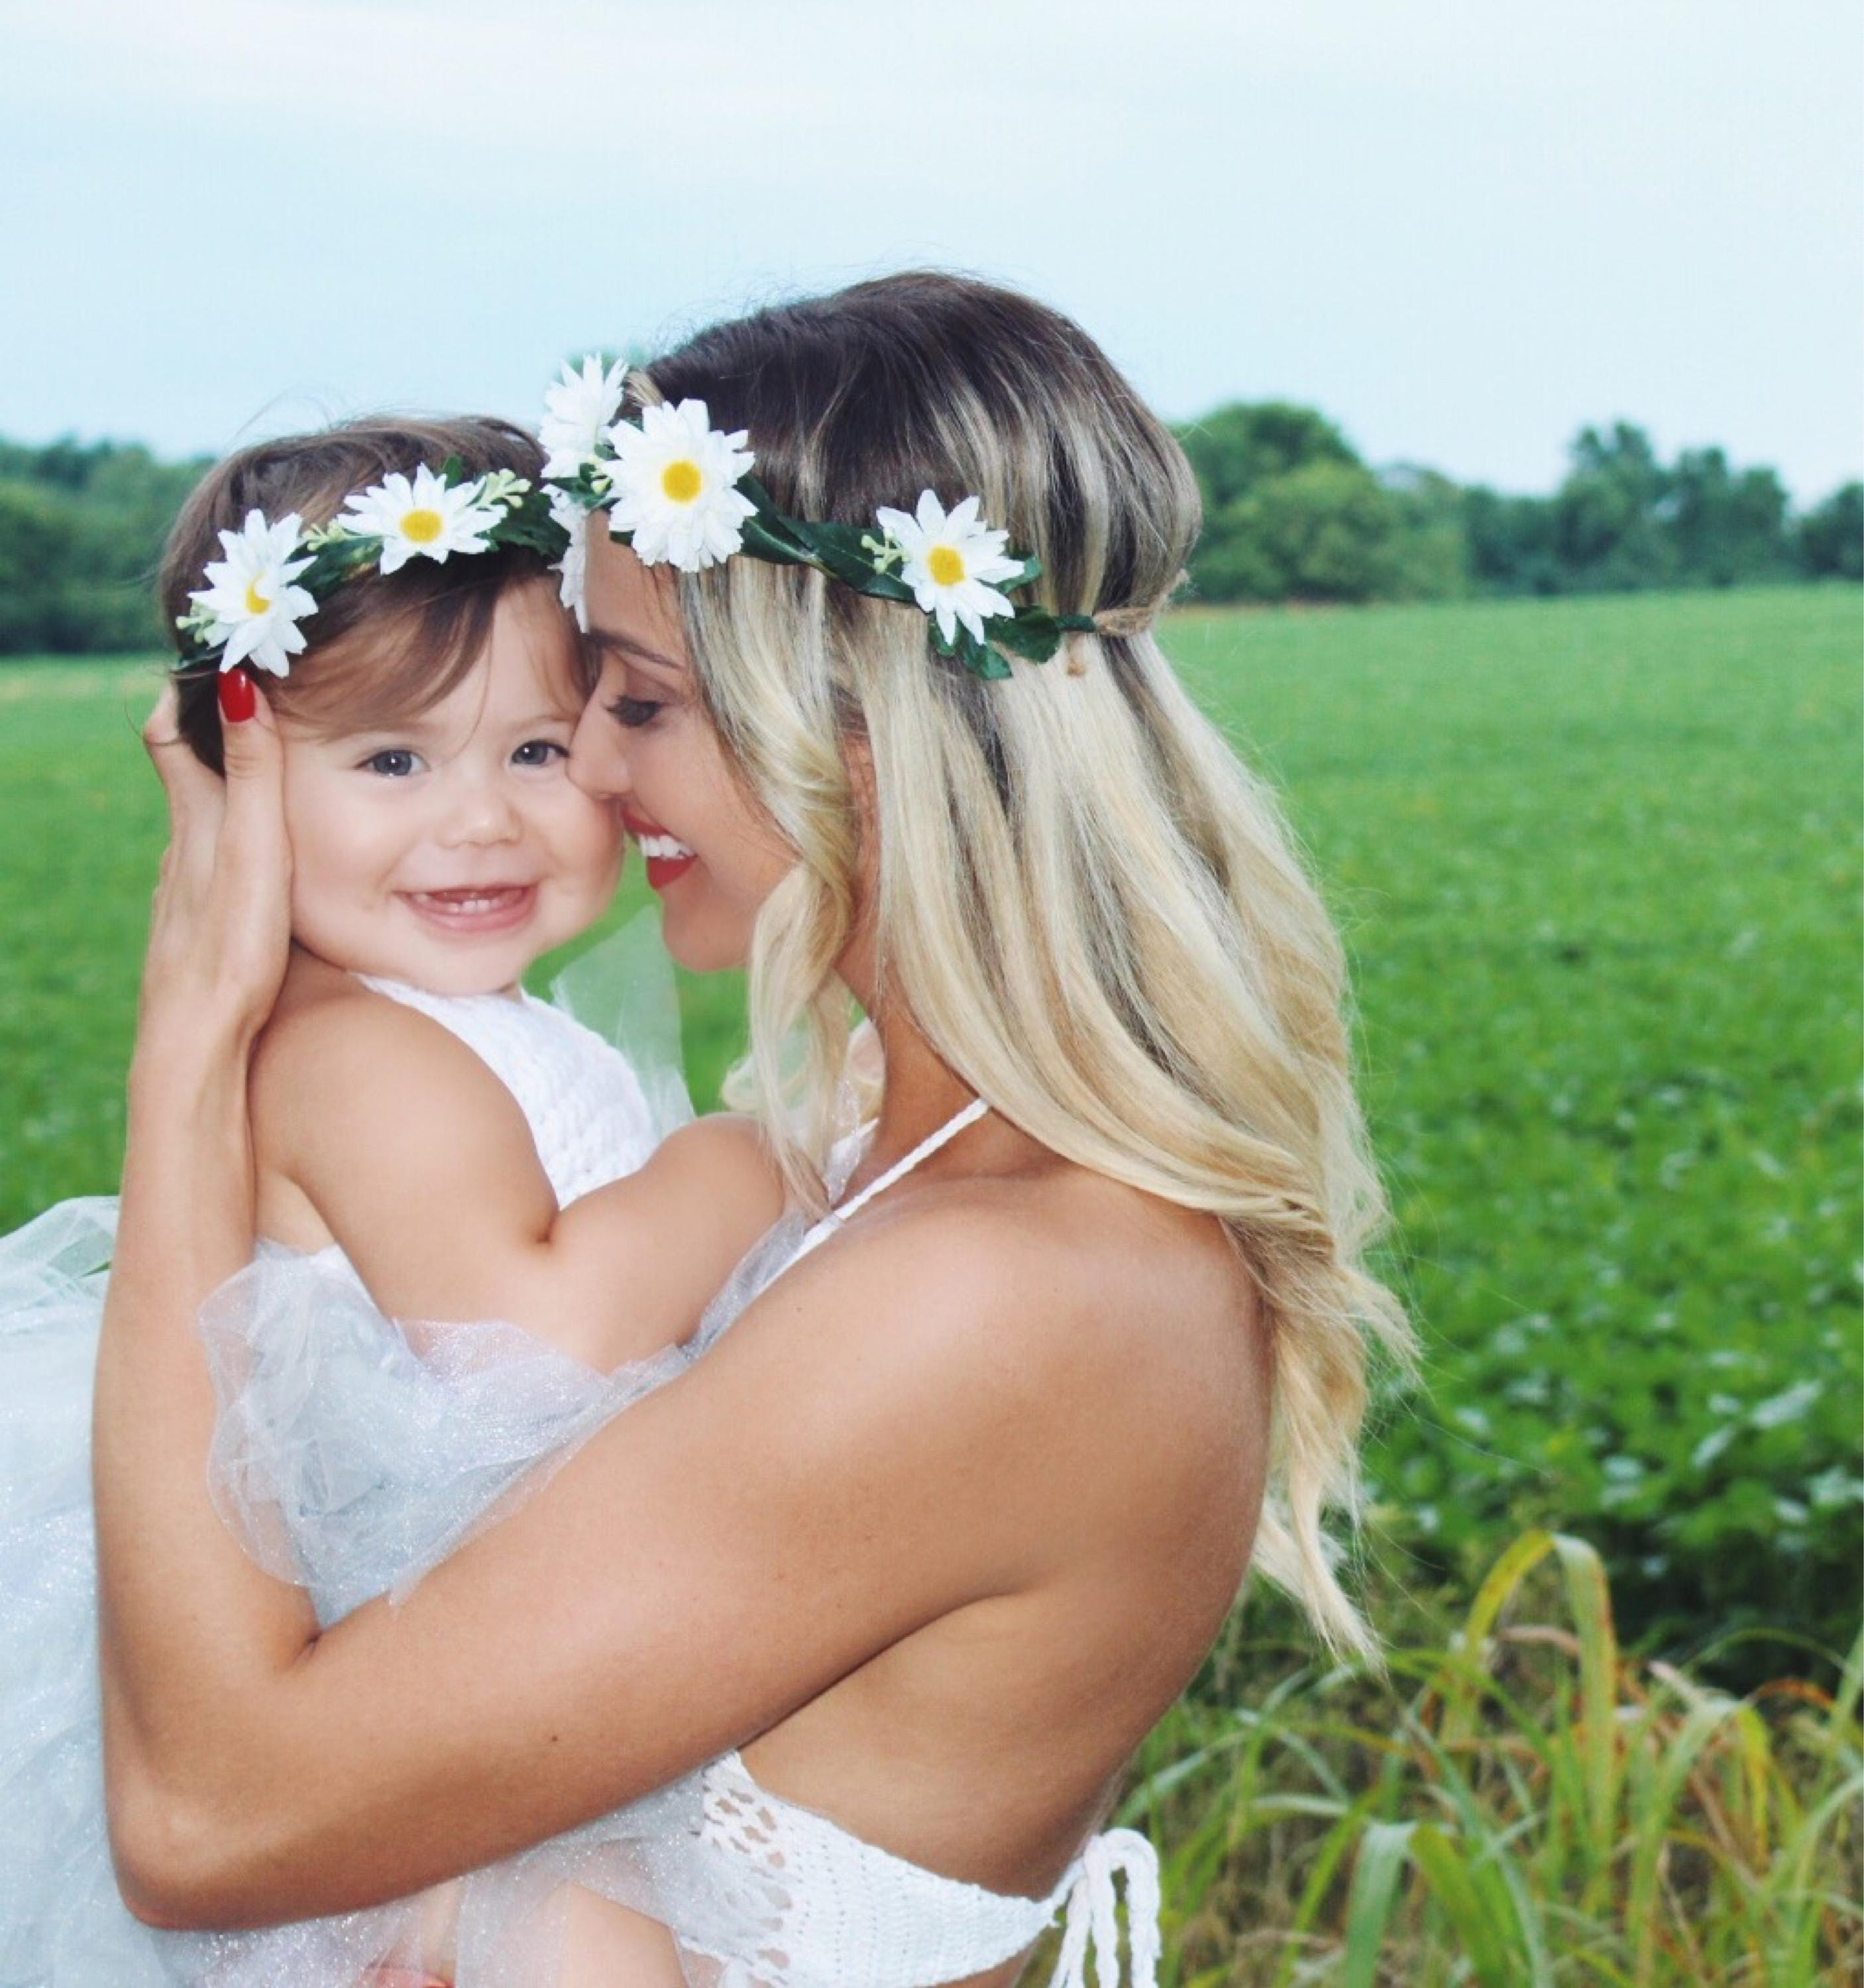 Mommy and me floral crown matching flower crowns mommy and description these mommy and me floral crowns izmirmasajfo